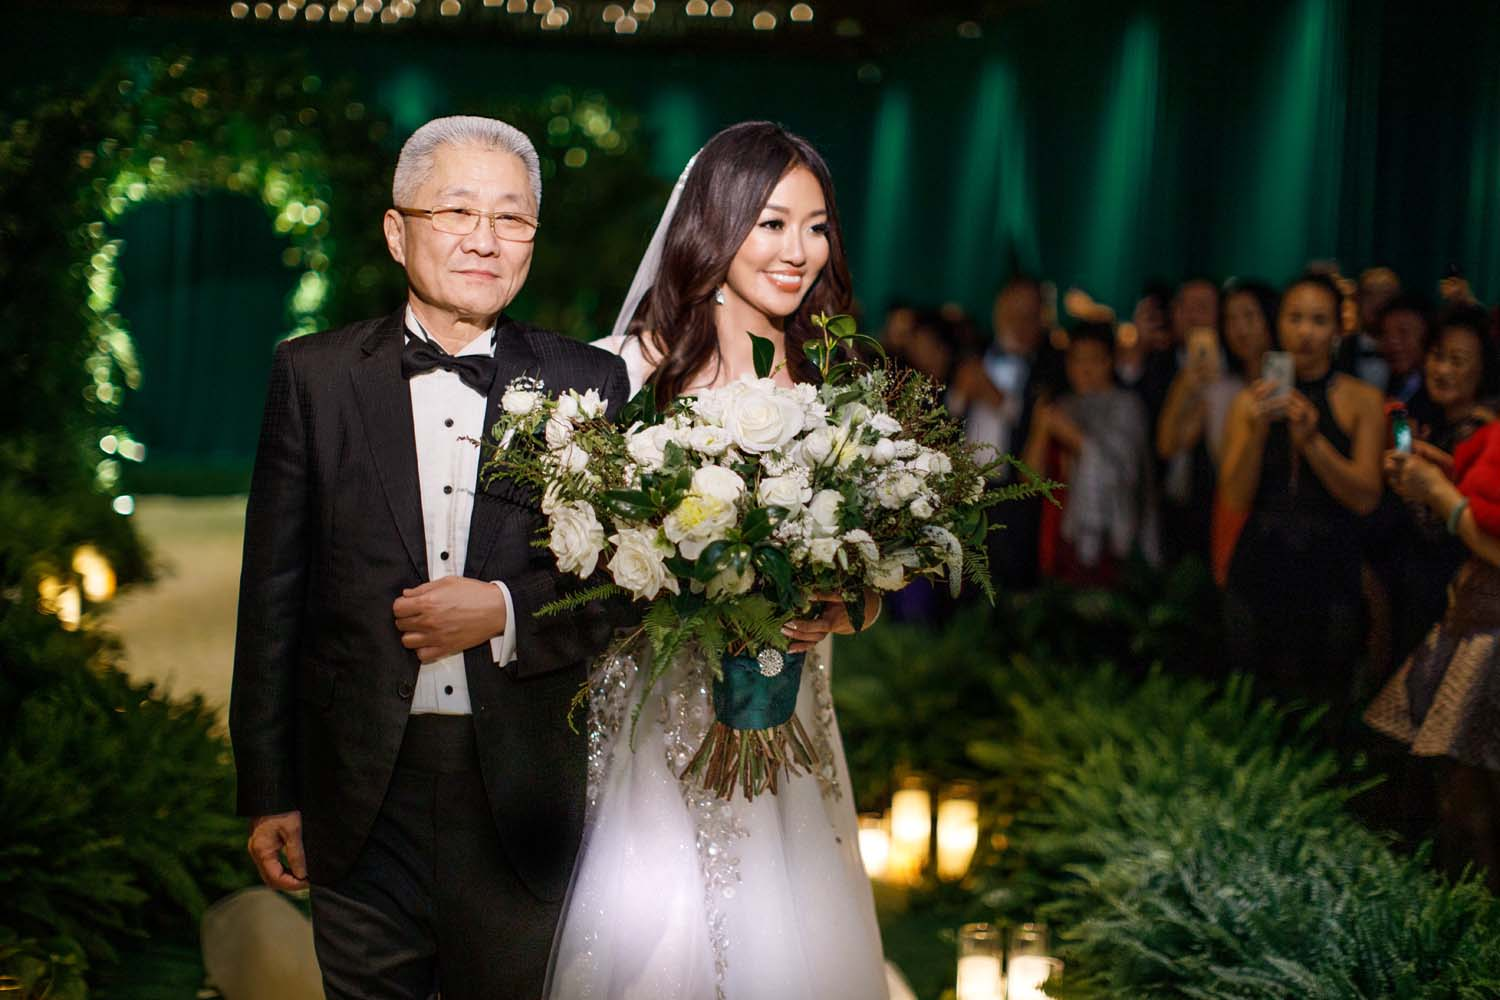 Bride walking down the aisle with her father. Luxury Las Vegas Wedding Planner Andrea Eppolito. www.andreaeppolitoevents.com. Photo by Rene Zadori.